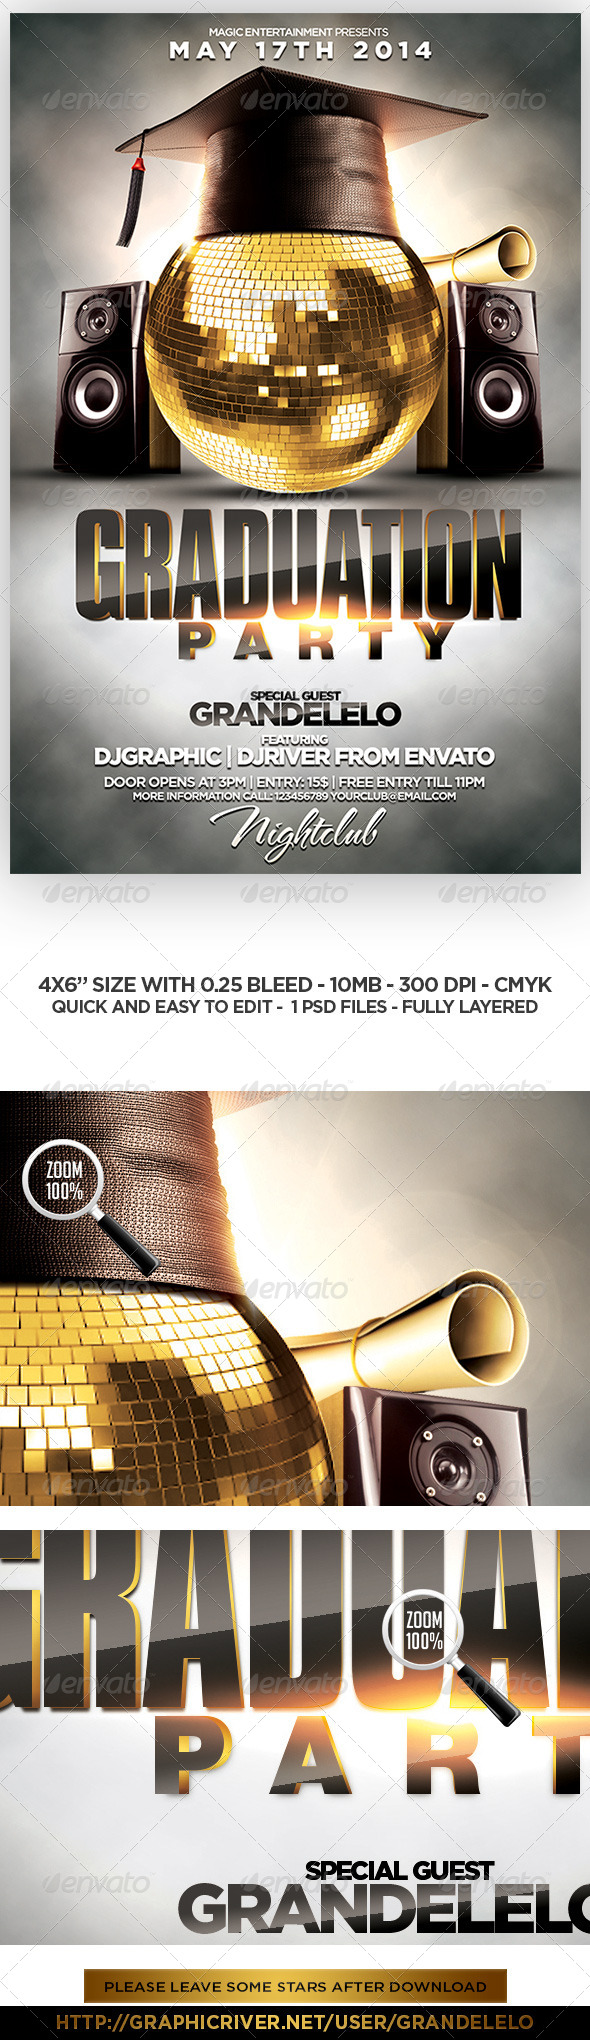 GraphicRiver Graduation Party Flyer Template 7700550